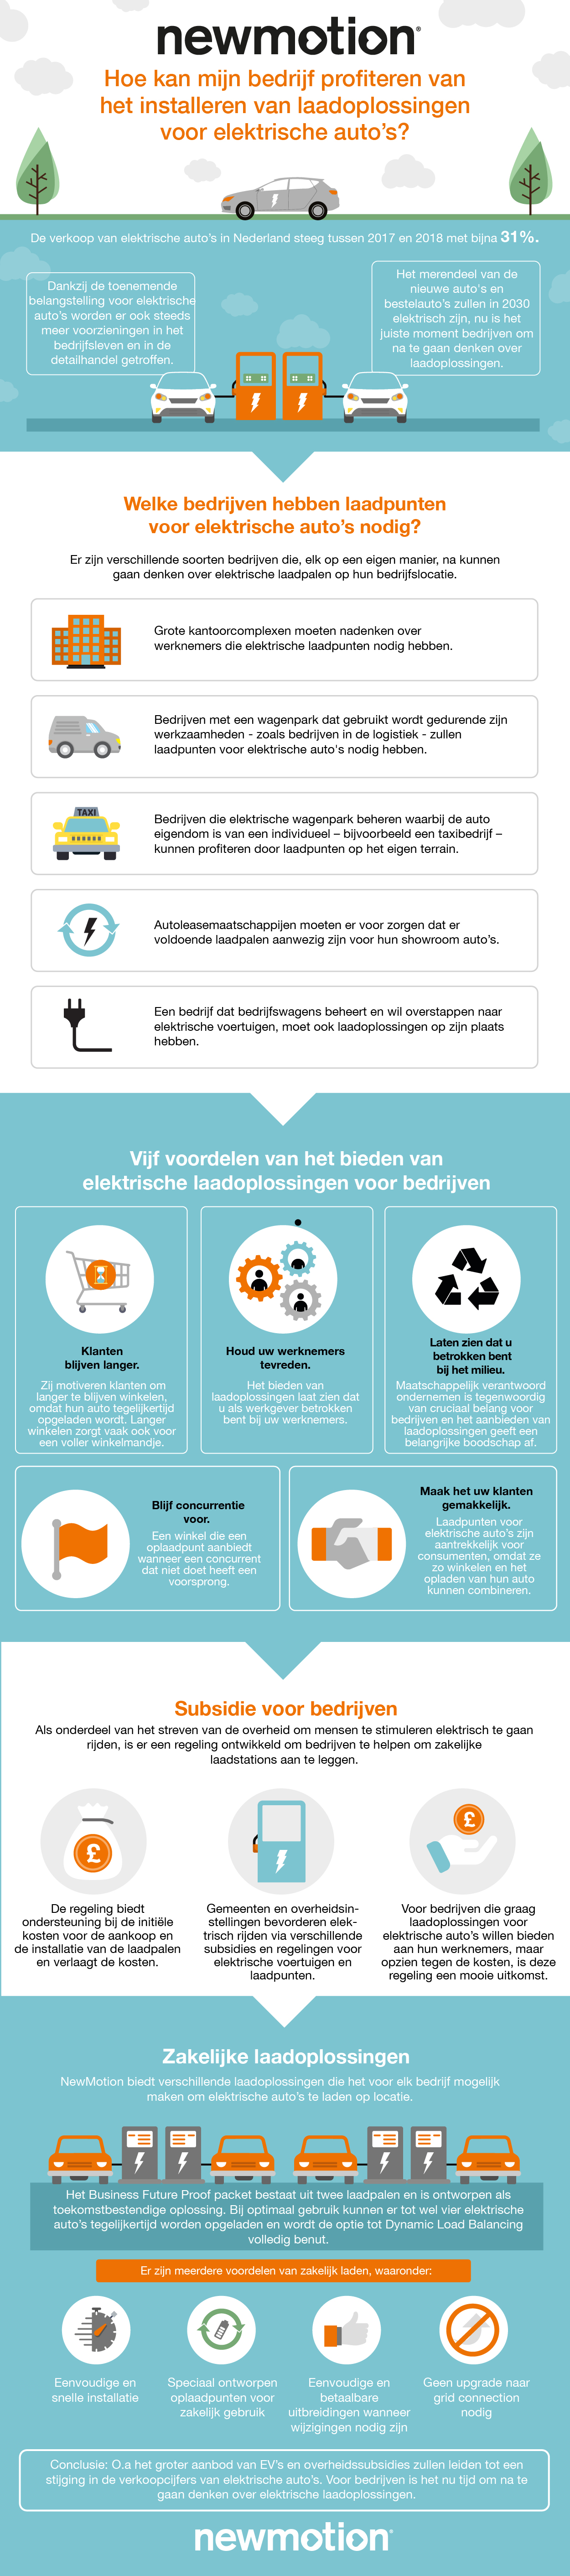 xinfographic-nl-1.jpg.pagespeed.ic.E-pABFLSxG